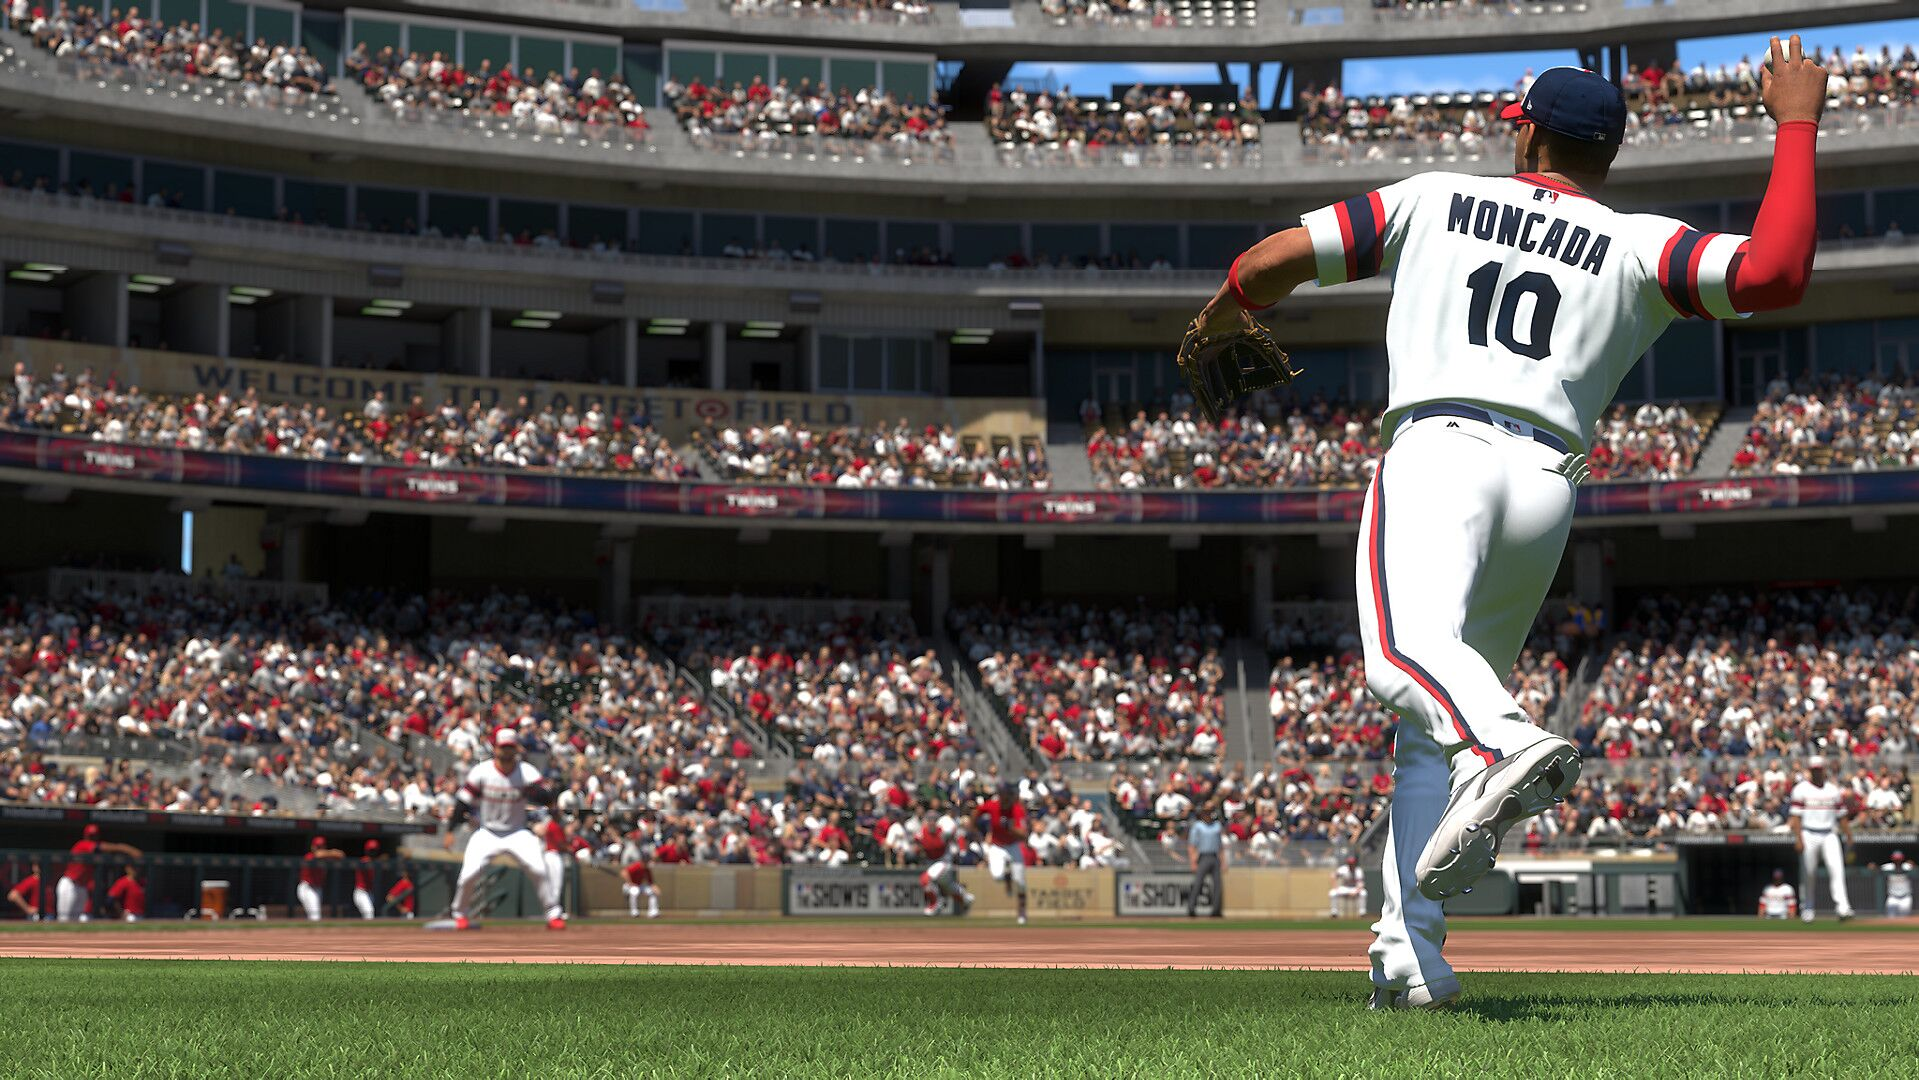 MLB The Show 19: 10th inning content and new bosses arrive